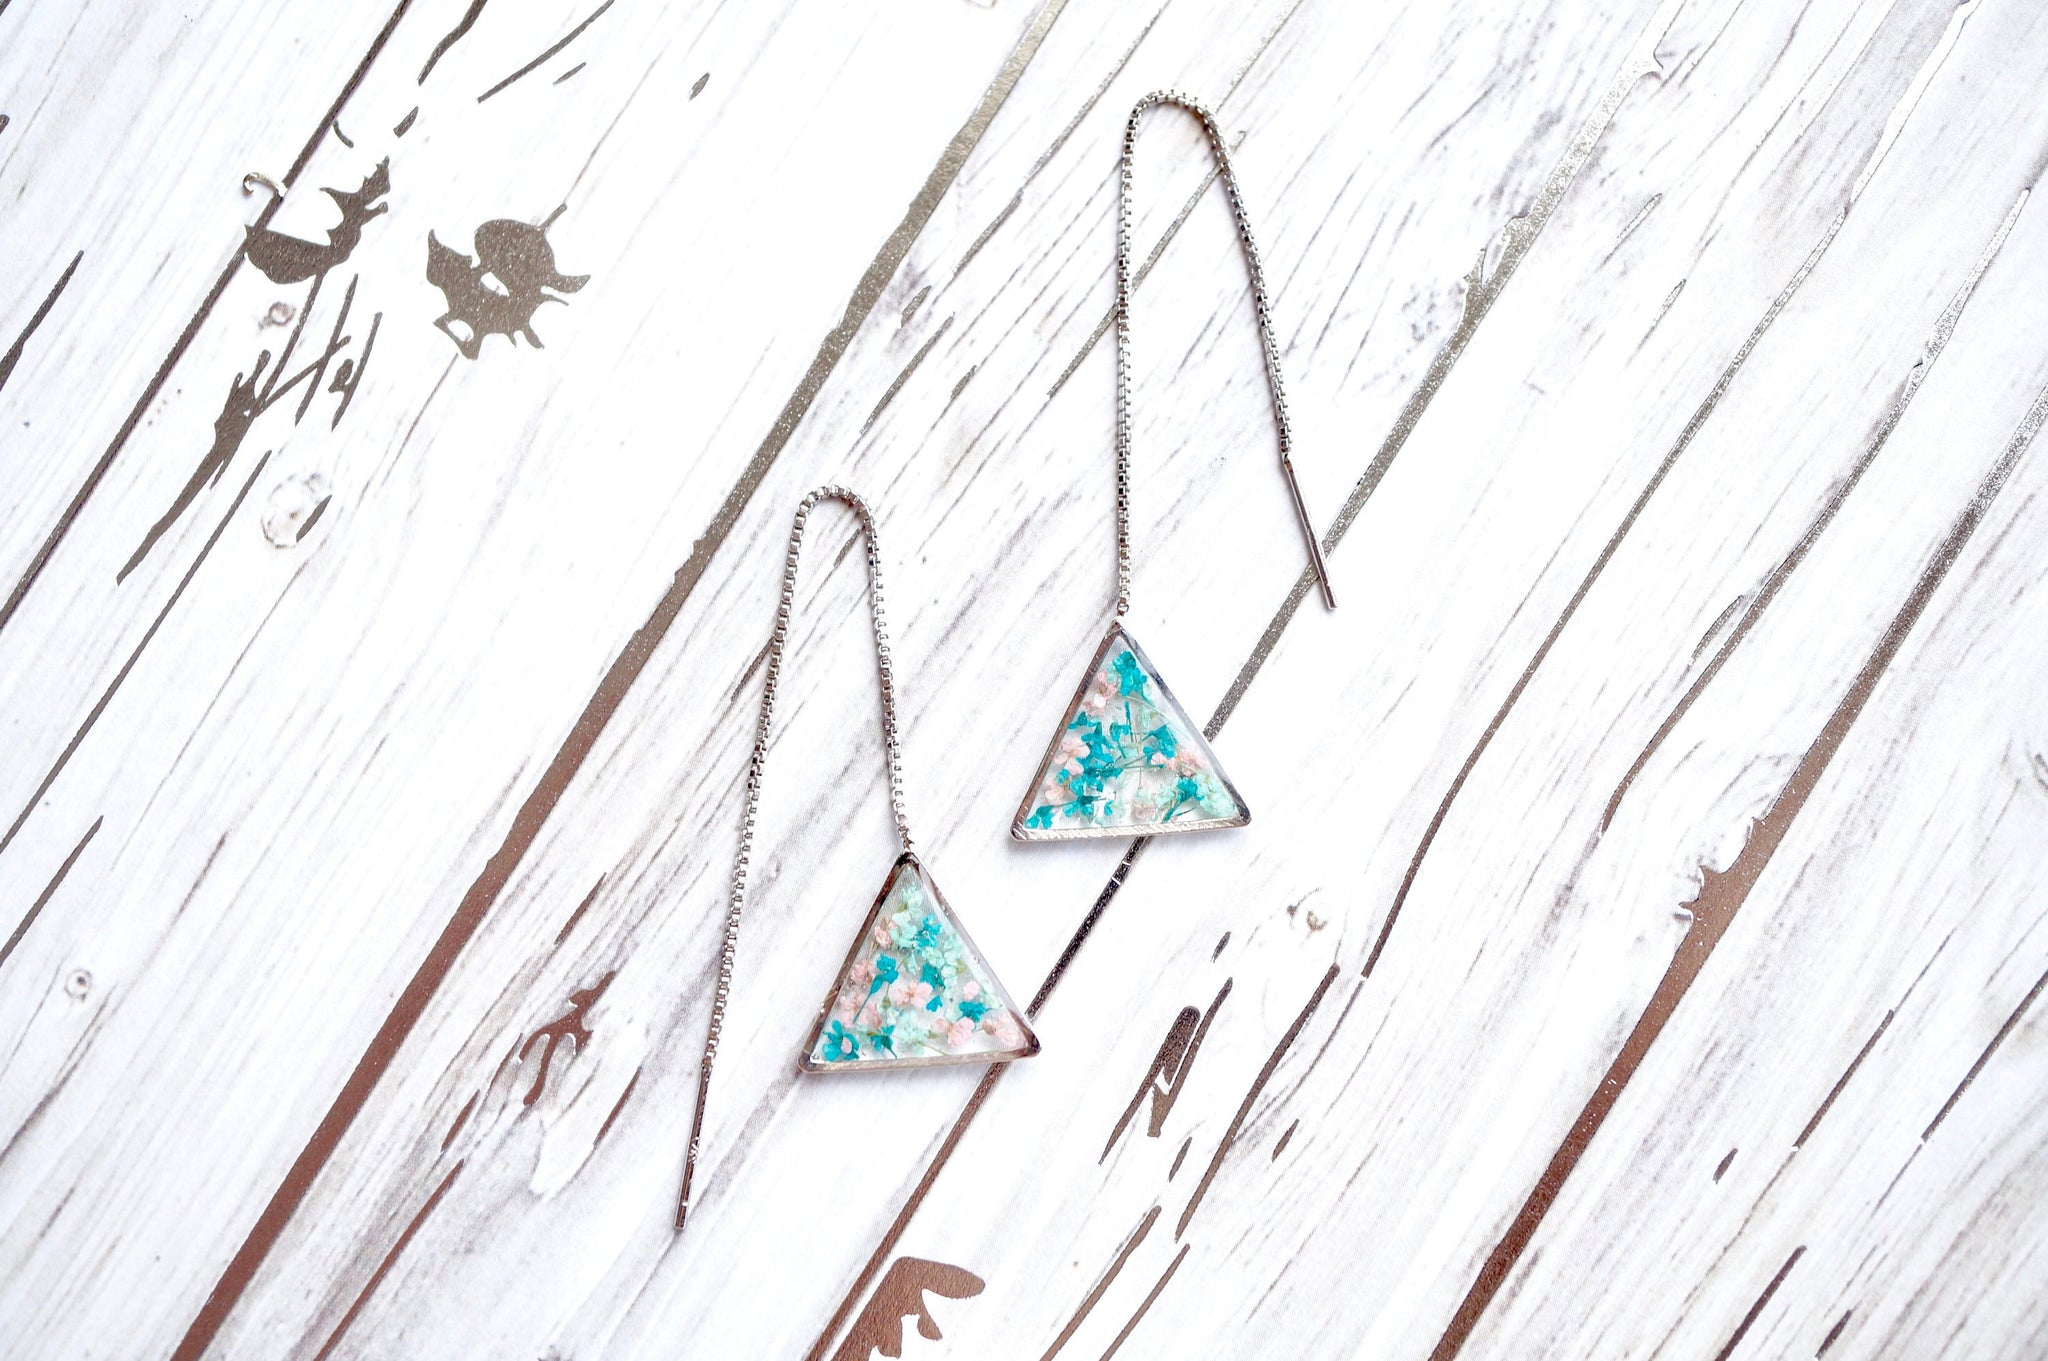 Real Pressed Flowers and Resin Threader Earrings, Silver Triangles in Mint Teal Light Pink